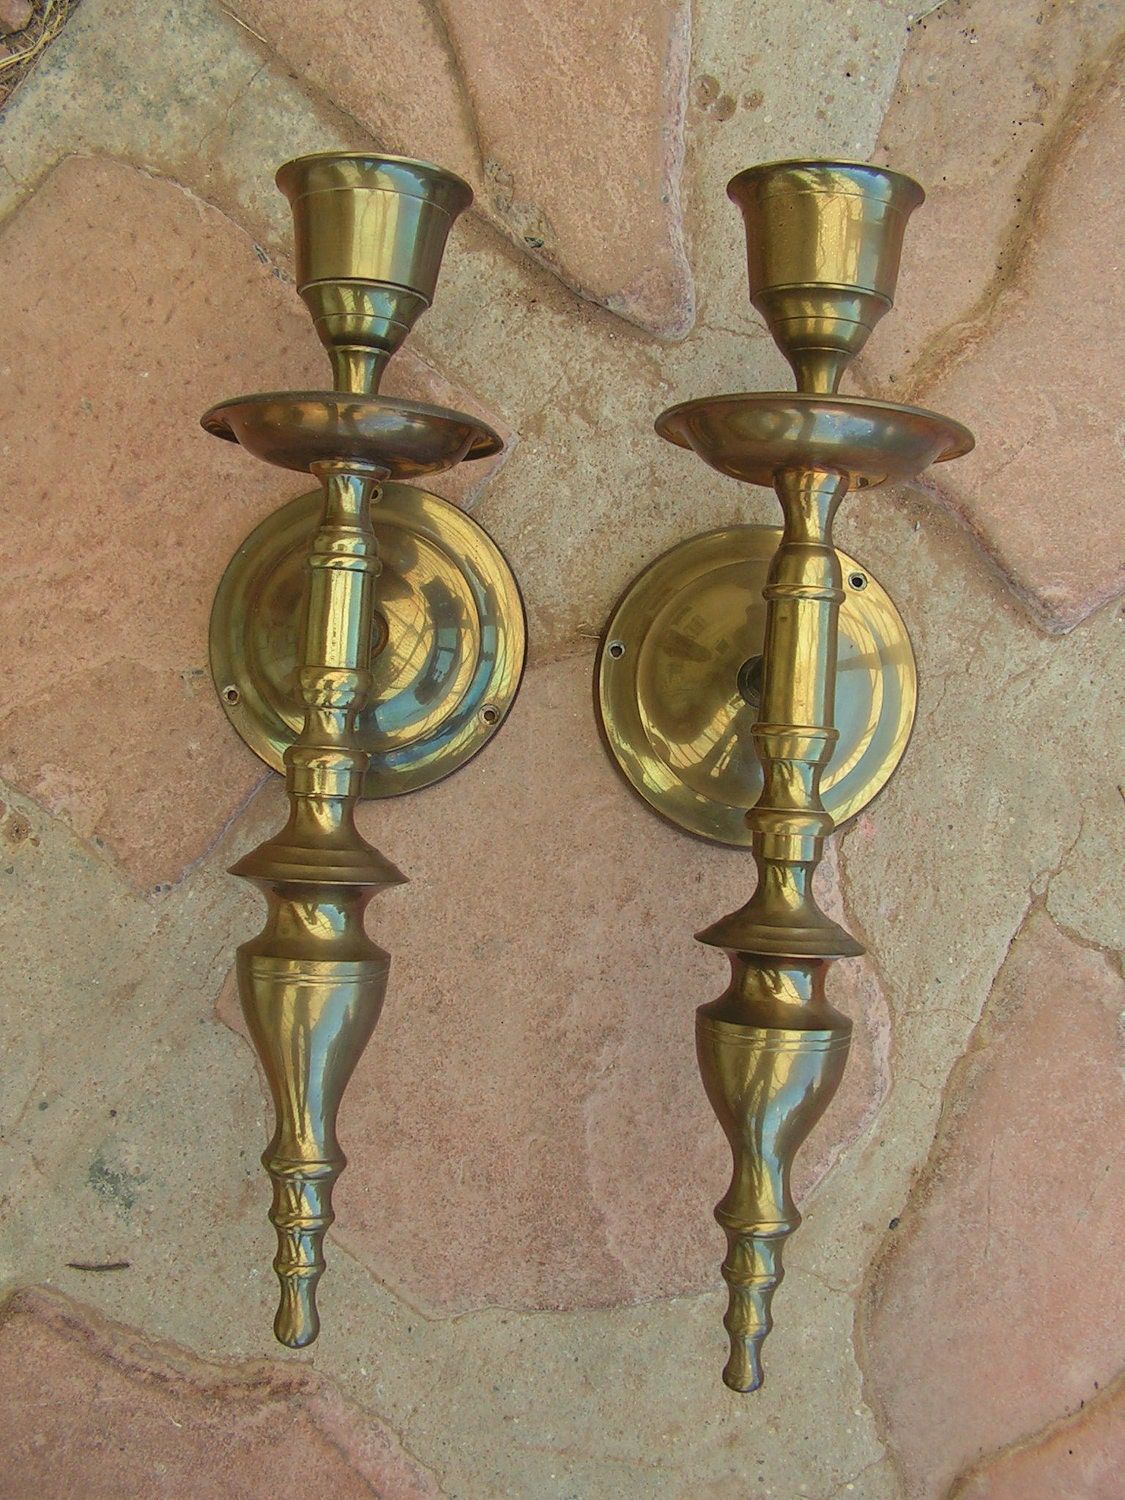 Candle Wall Sconces Antique : Vintage Brass Wall Sconces Candle Holders Large by retrosideshow